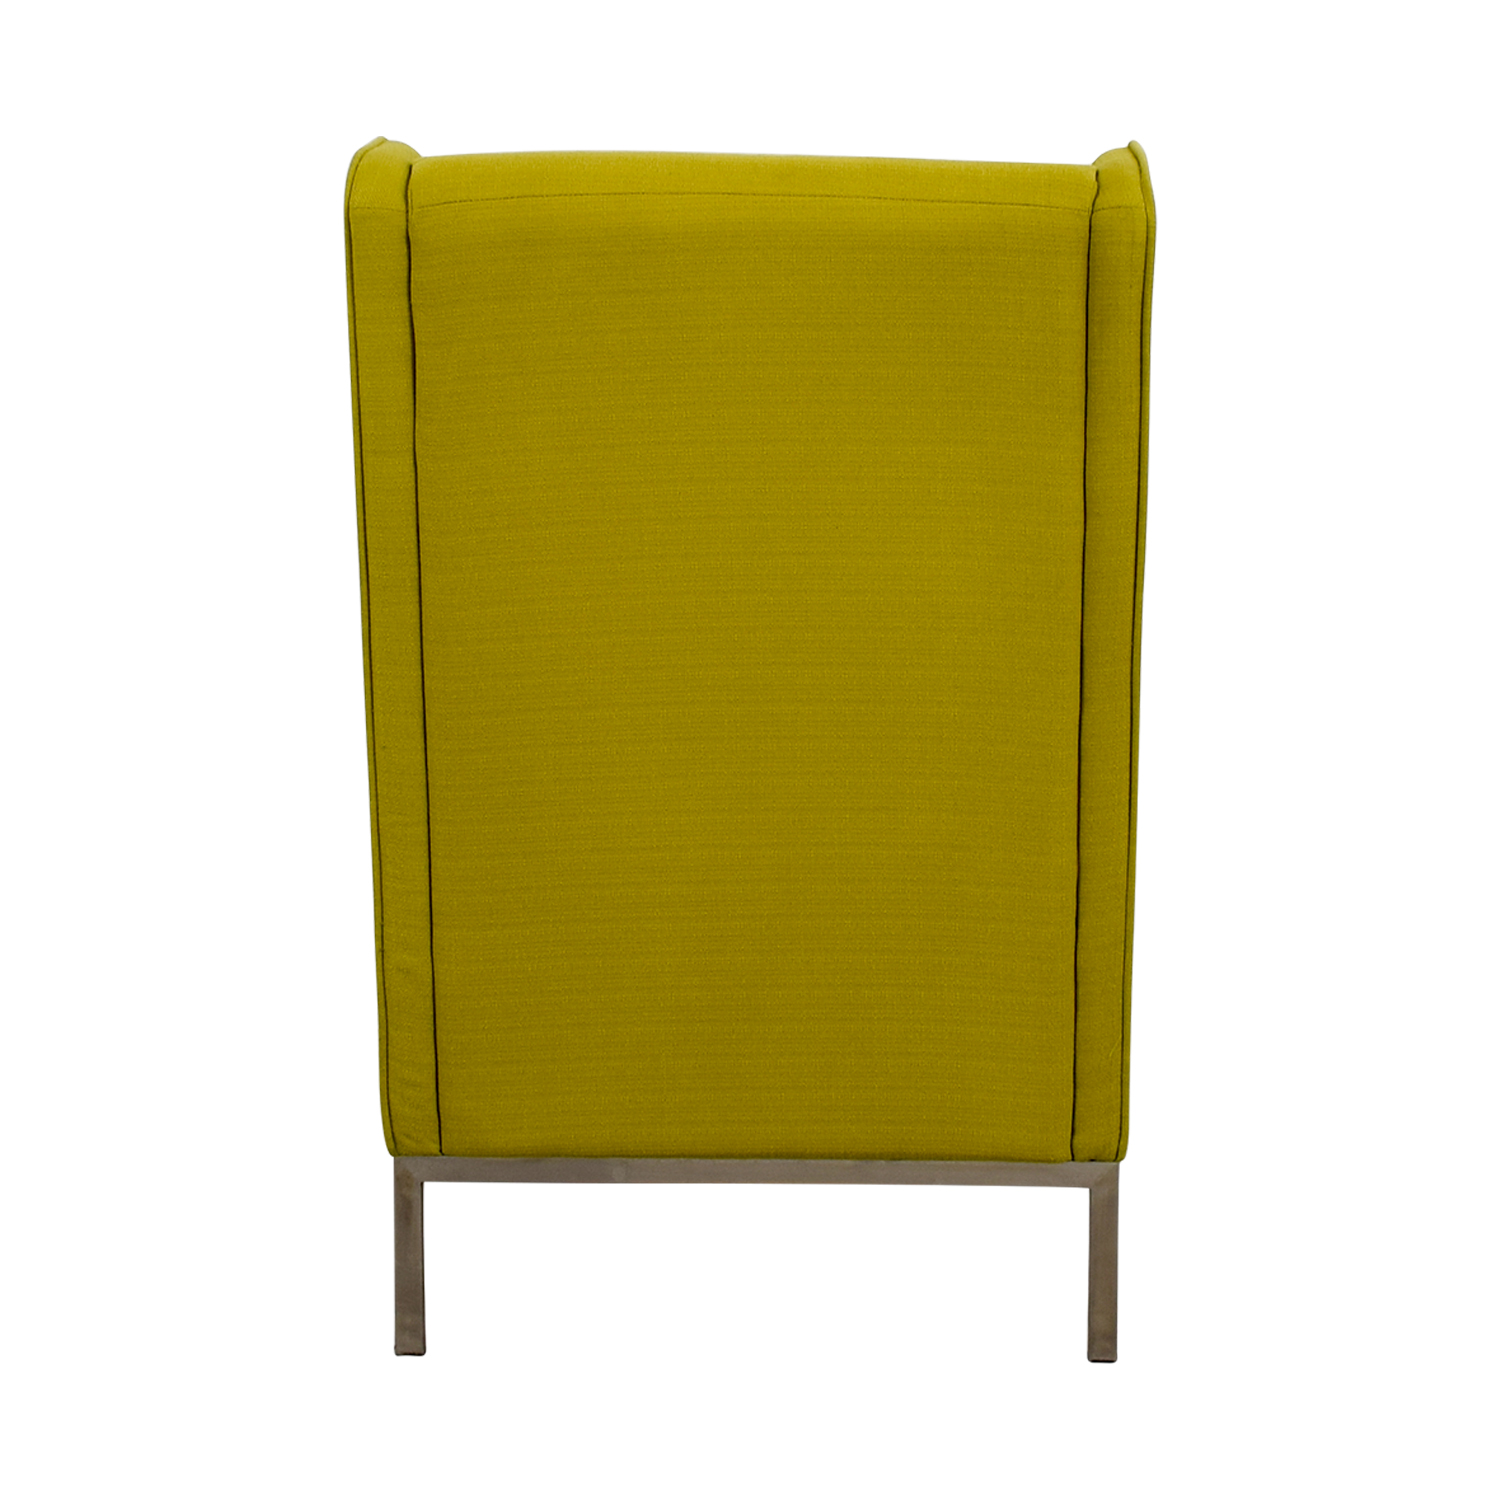 Crate and Barrel Crate and Barrel Neon Green Accent Chair discount